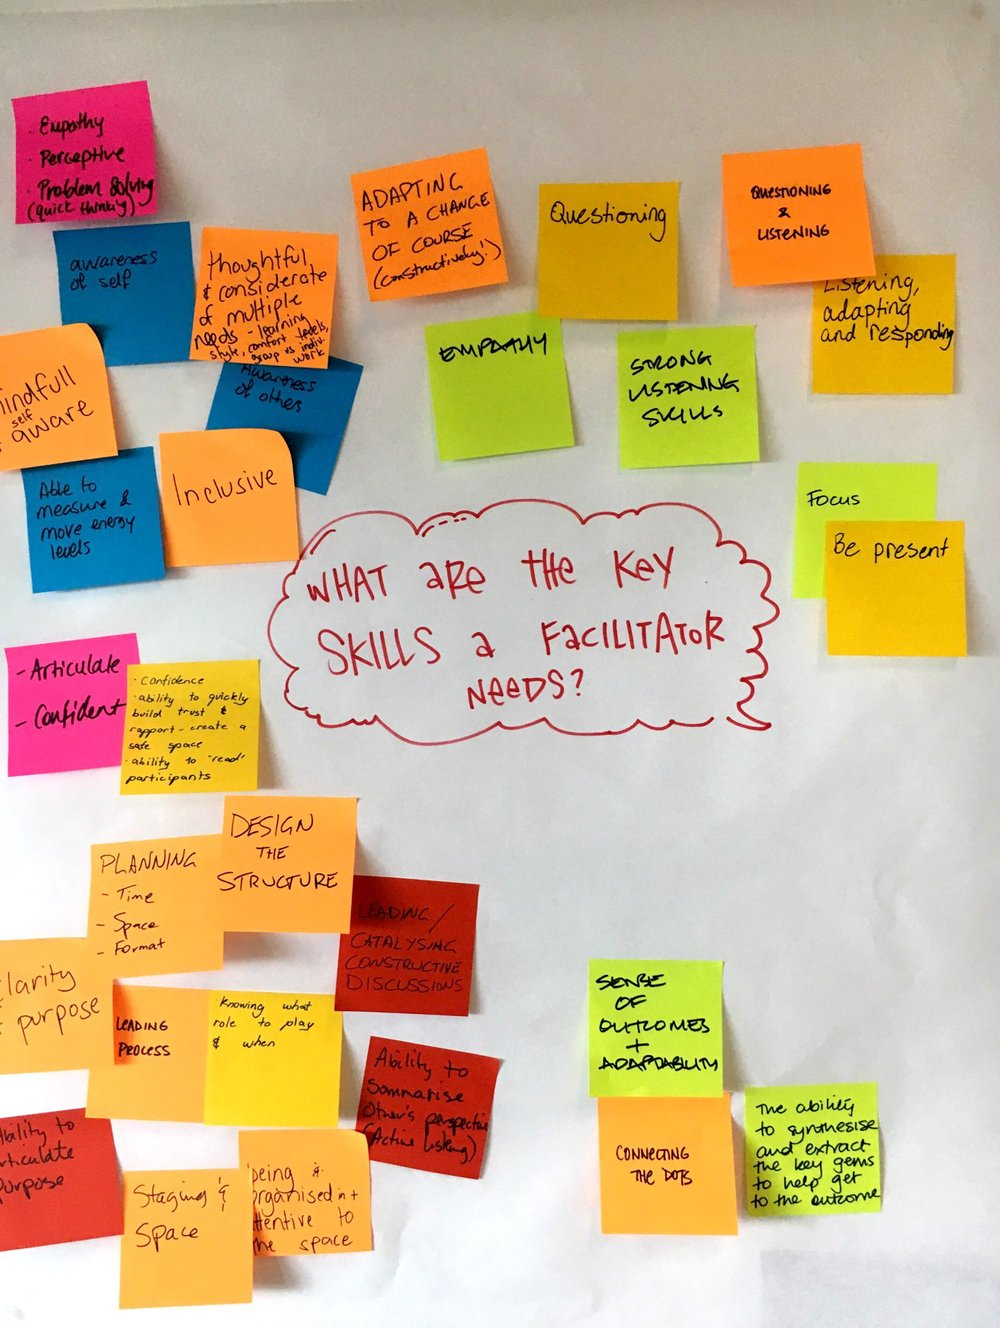 Key skills of the Facilitator?